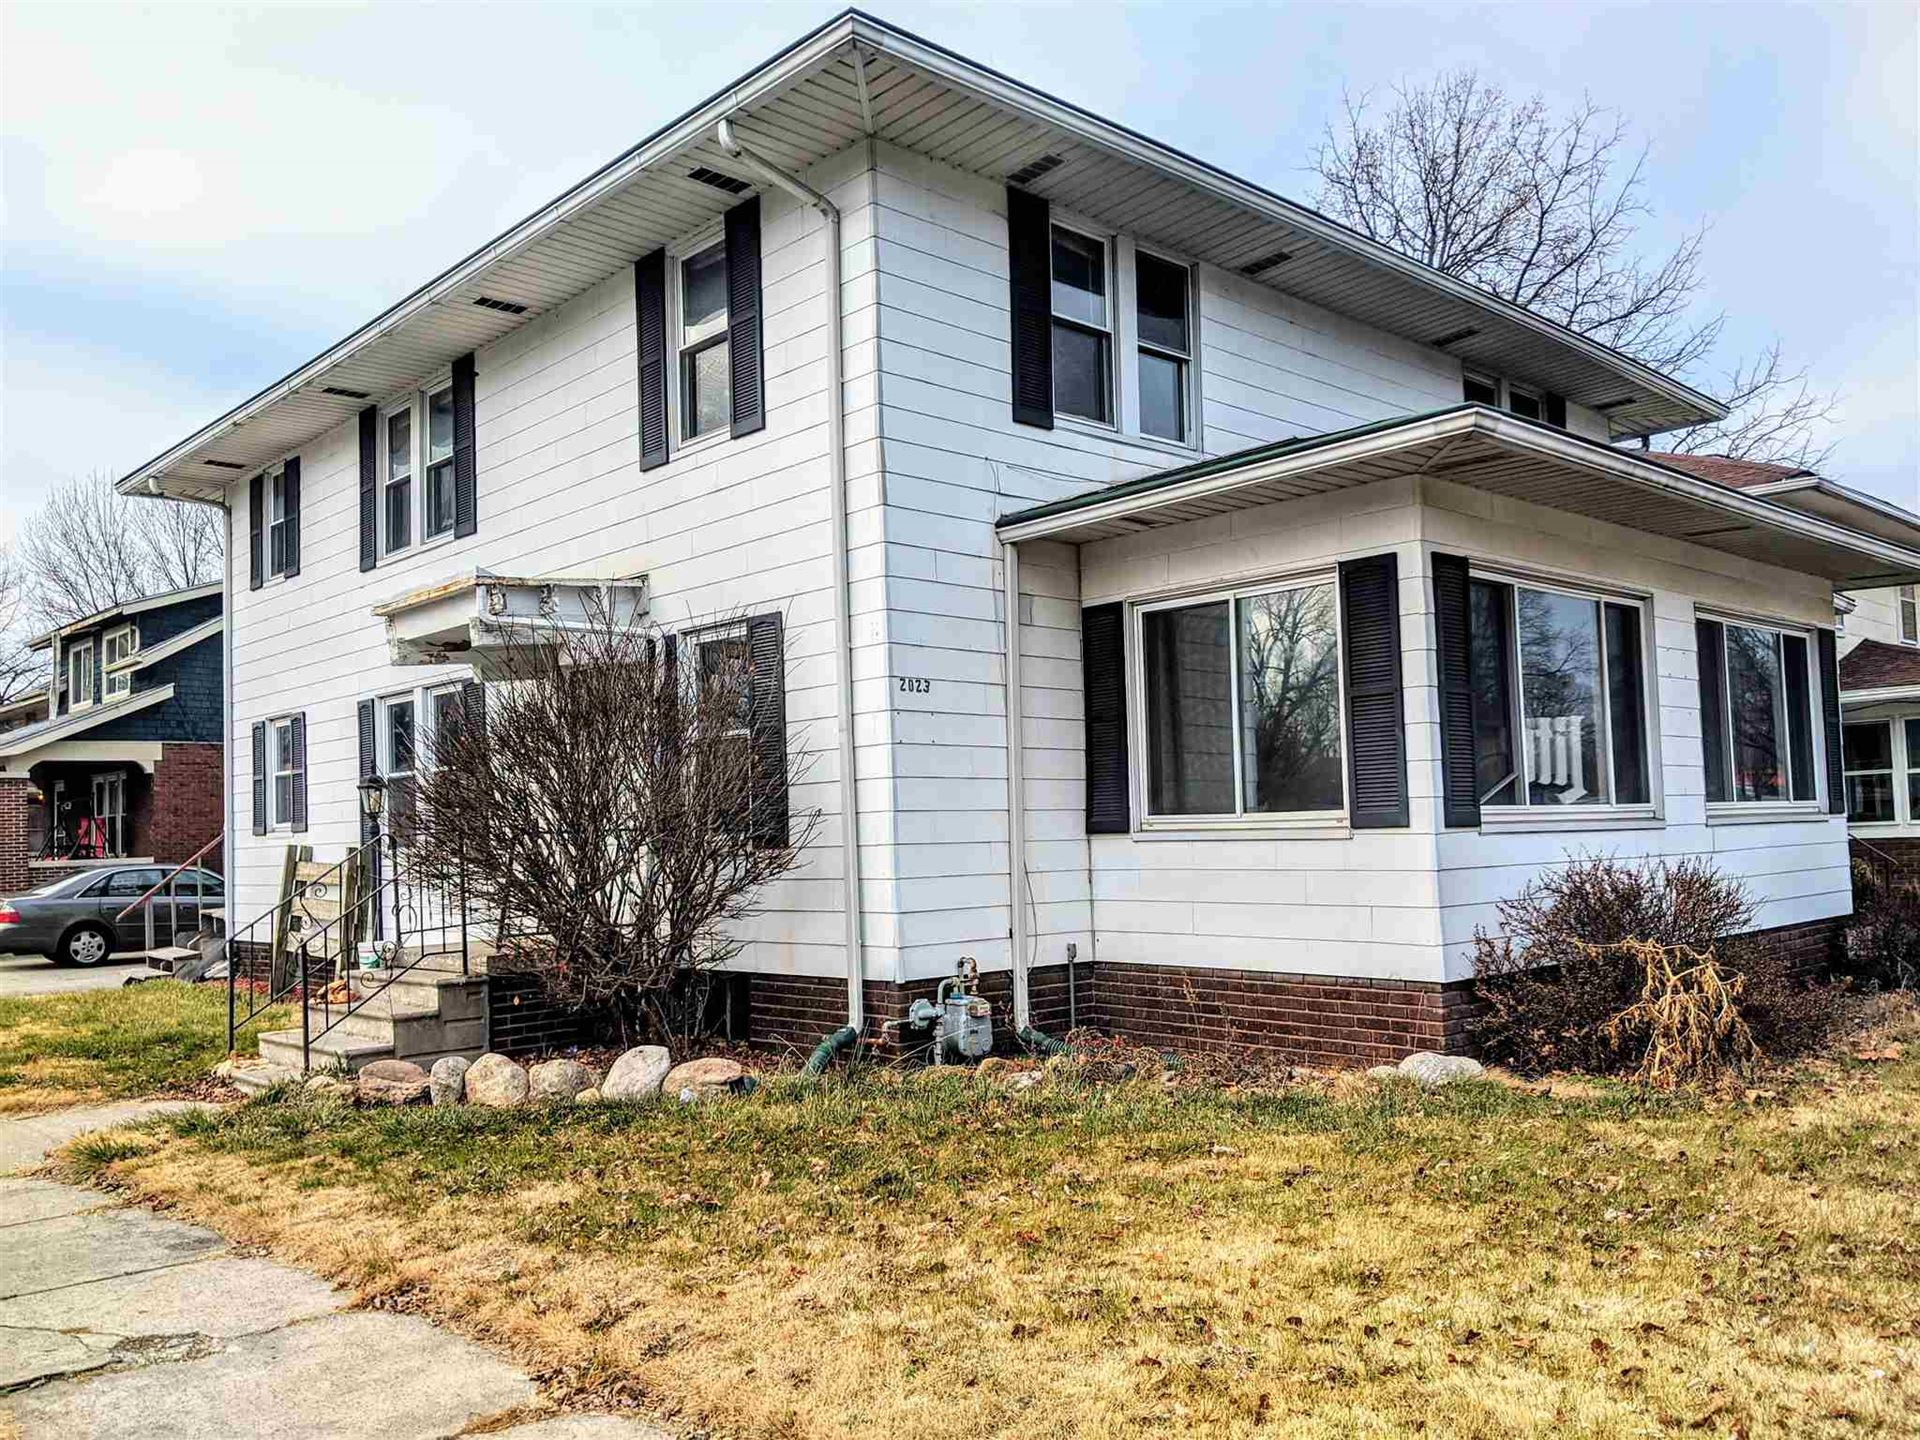 2023 miami Street, South Bend, IN 46613 - #: 202001174